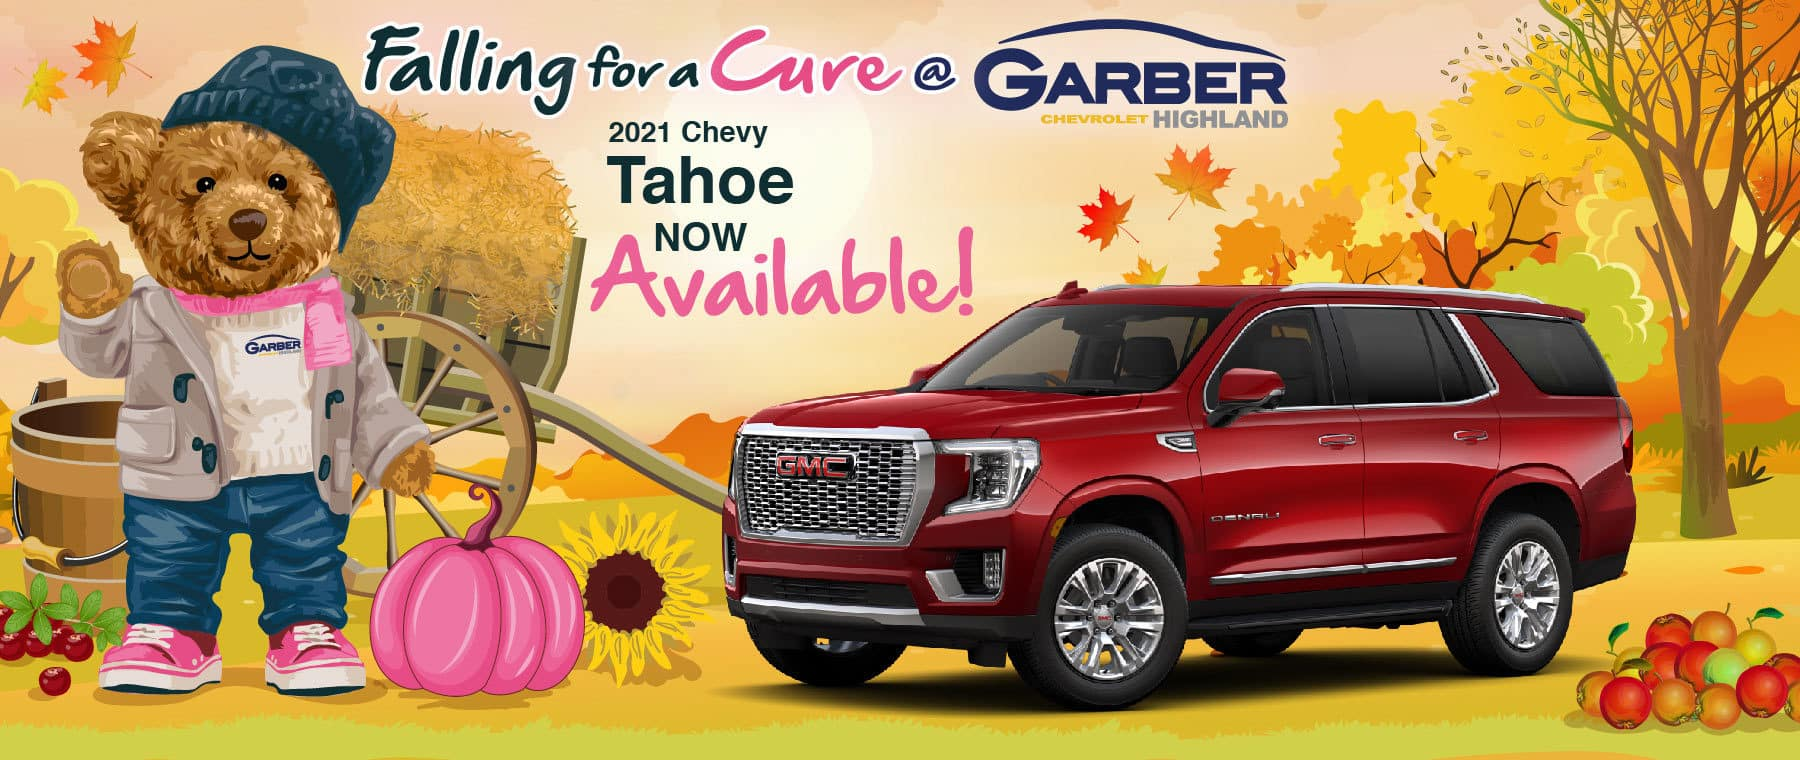 2021 Chevy Tahoe - now available!